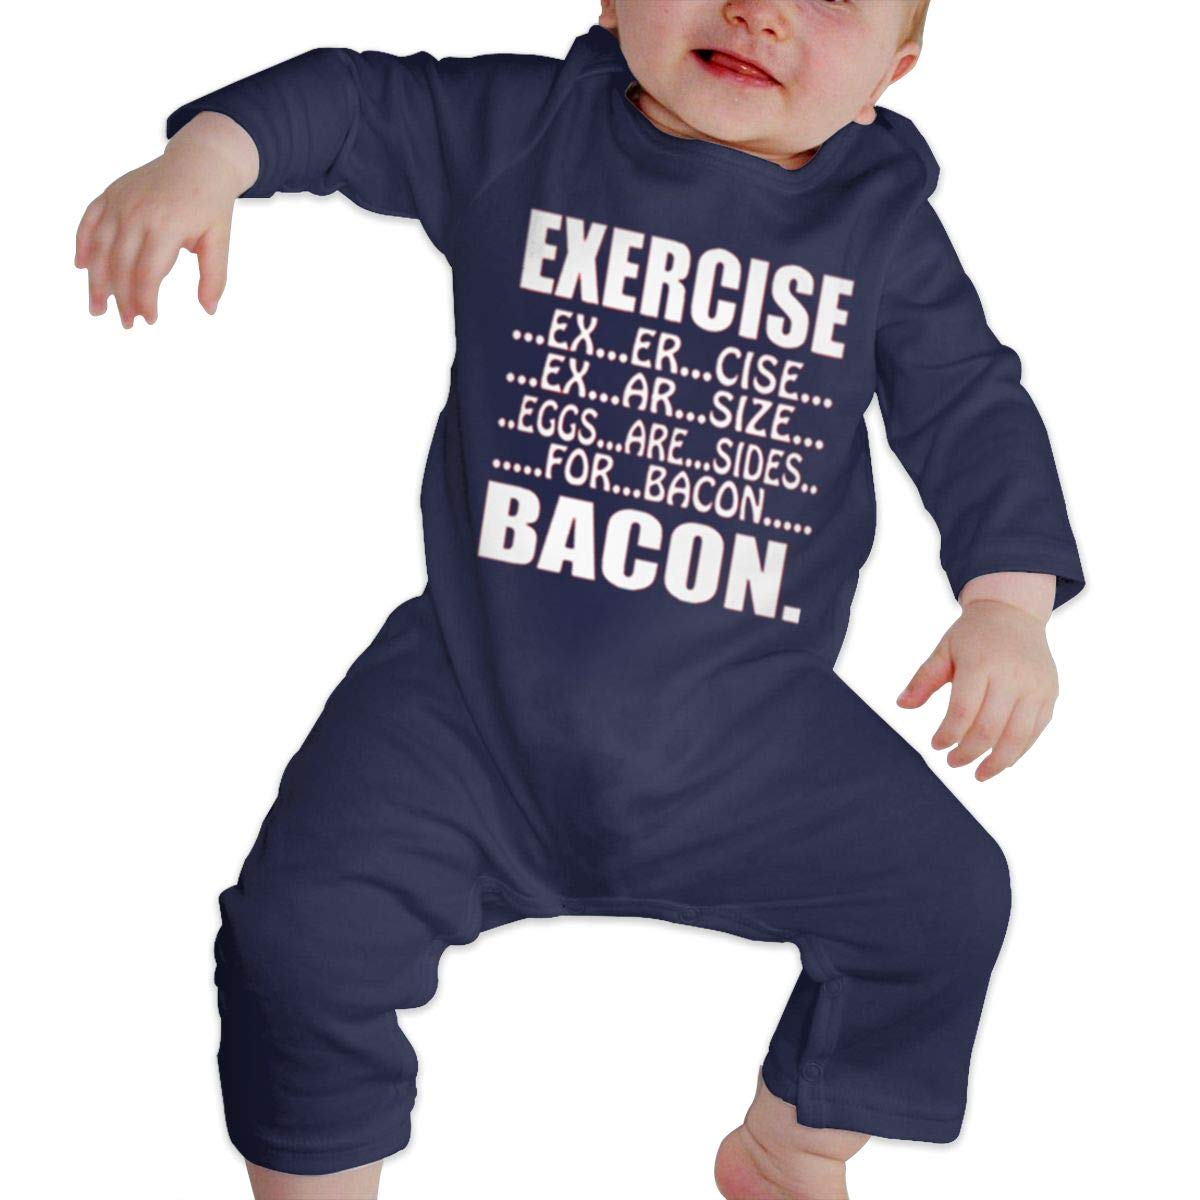 Exercise for Bacon Unisex Long Sleeve Baby Gown Baby Bodysuit Unionsuit Footed Pajamas Romper Jumpsuit